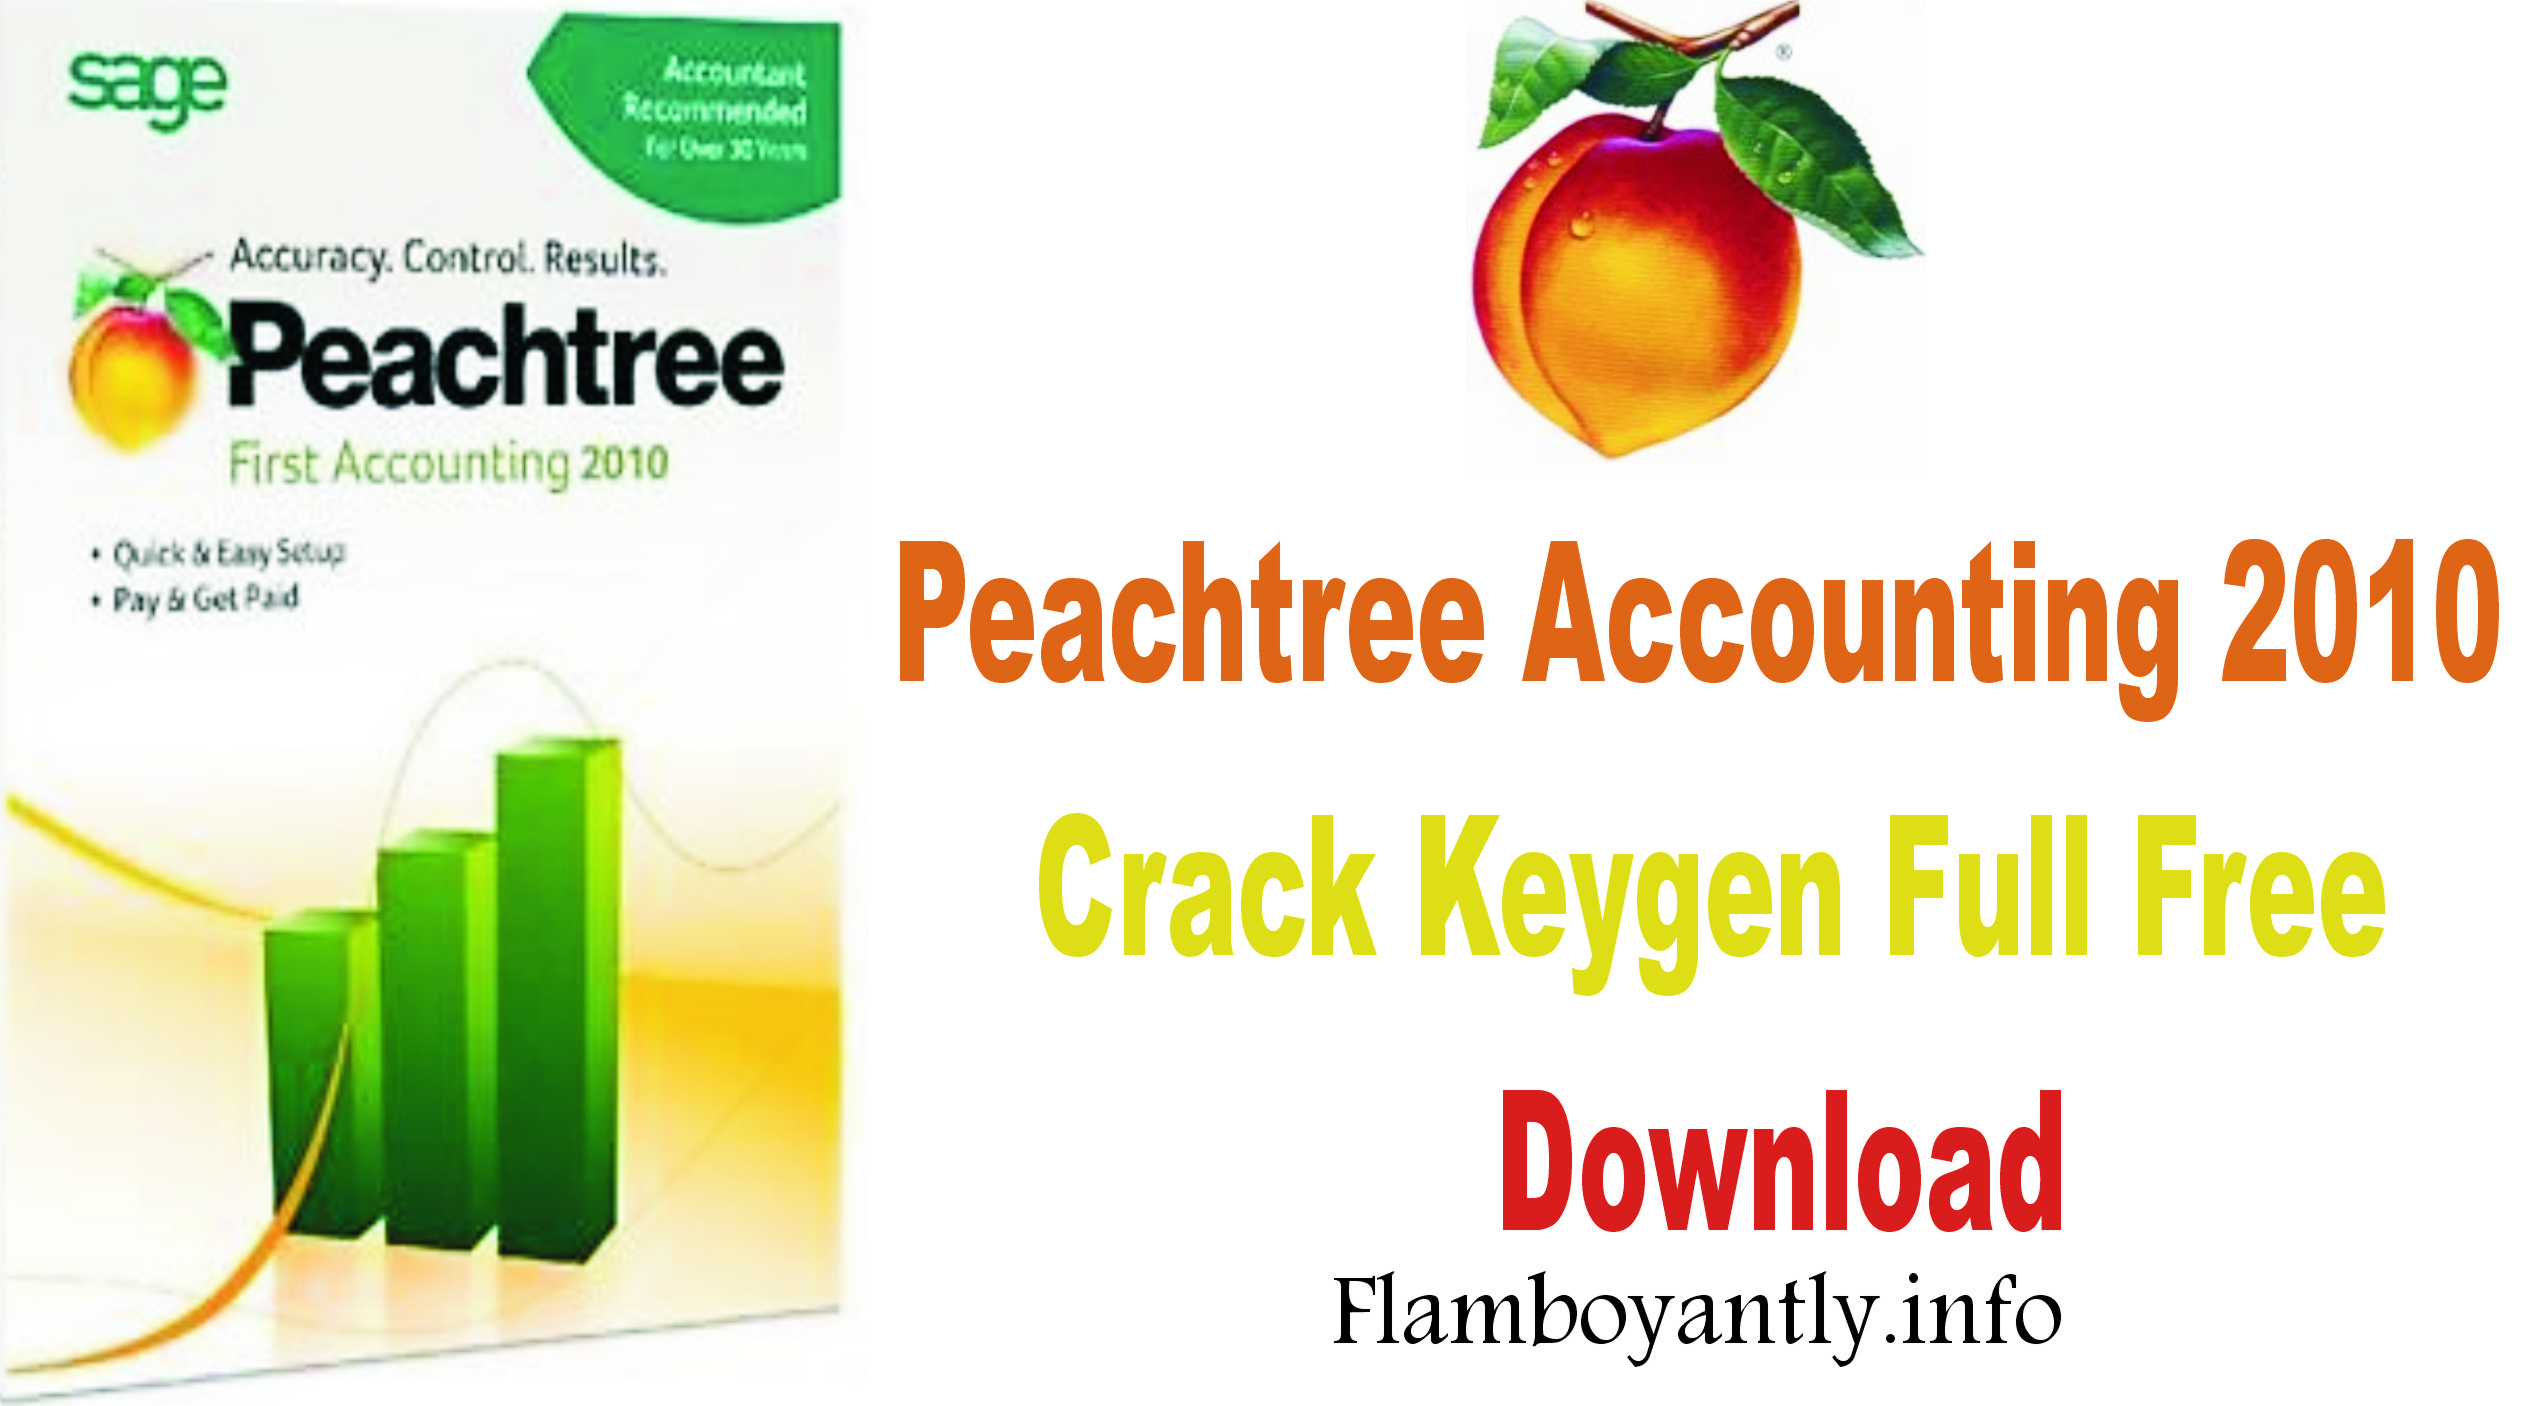 Peachtree Accounting 2010 Crack Keygen Full Free Download